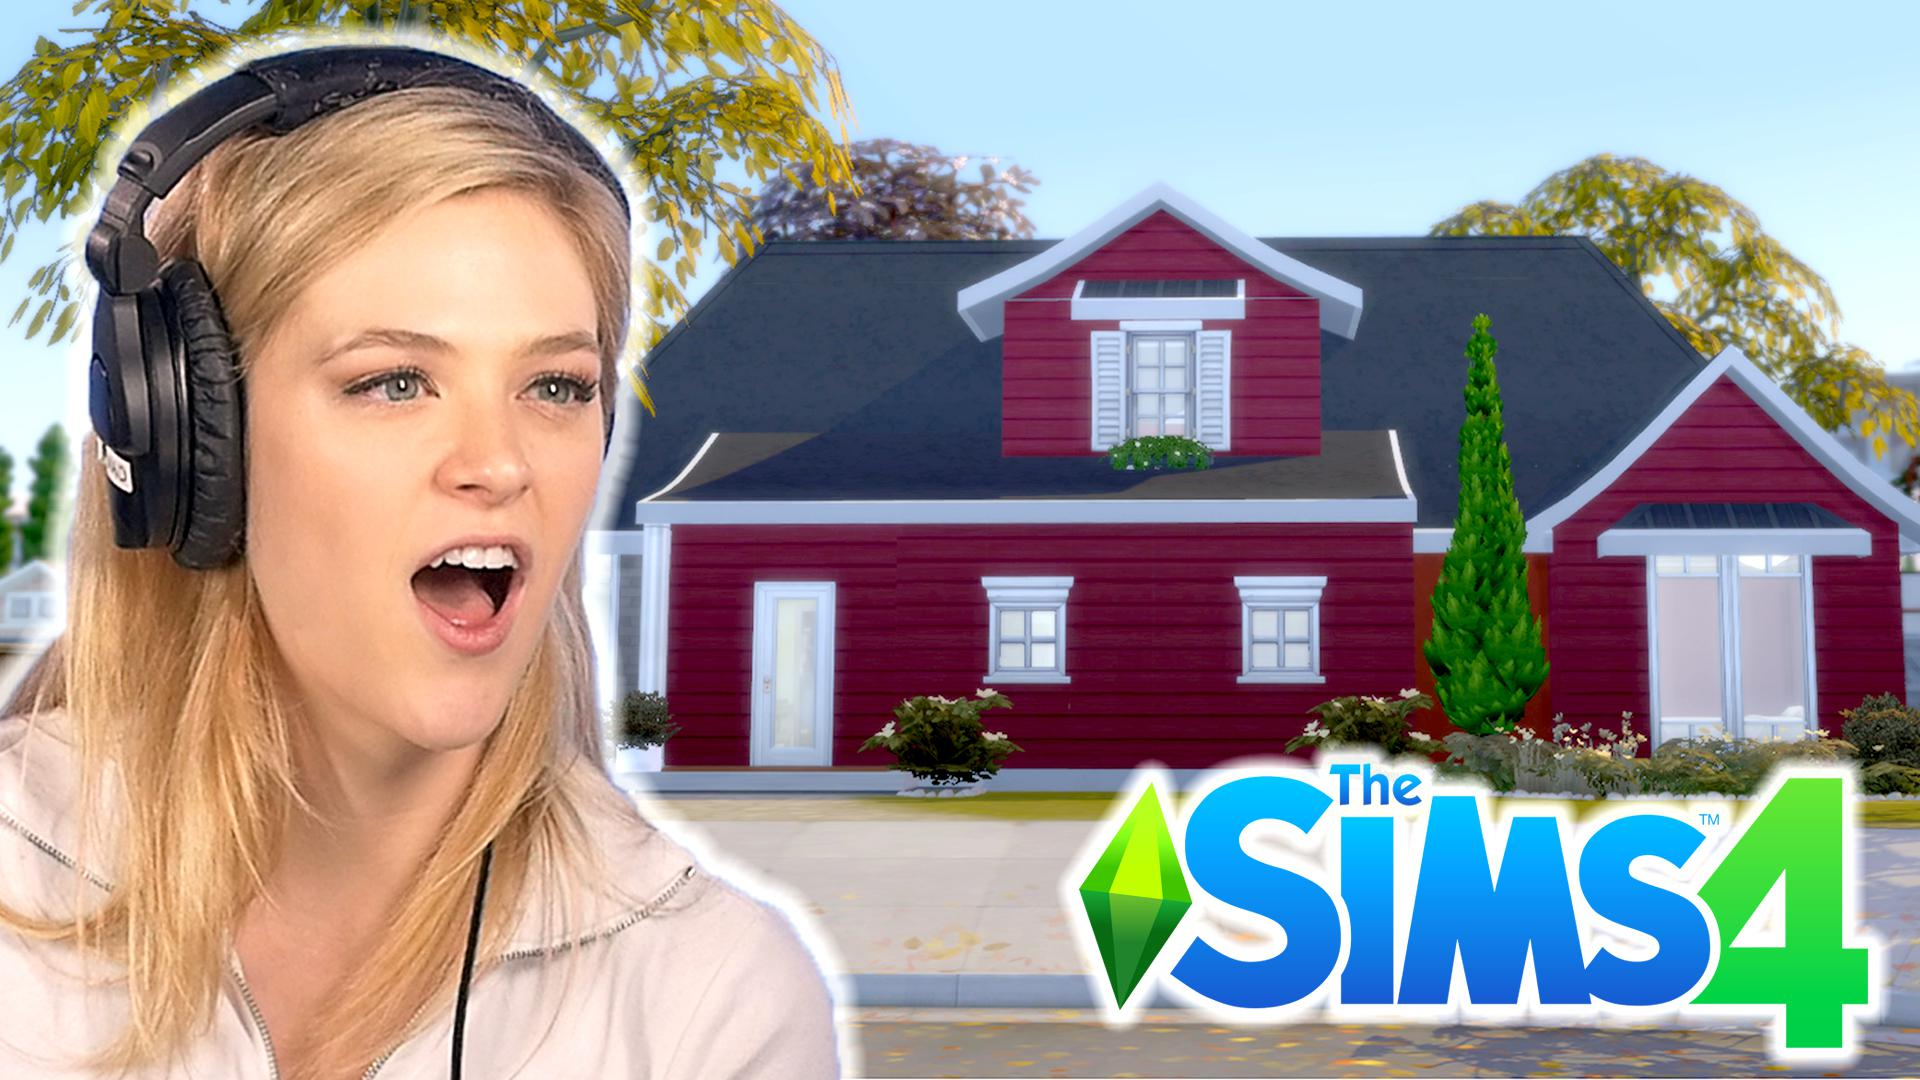 Multiplayer by BuzzFeed - Single Girl Remodels Her Children's Home In The  Sims 4